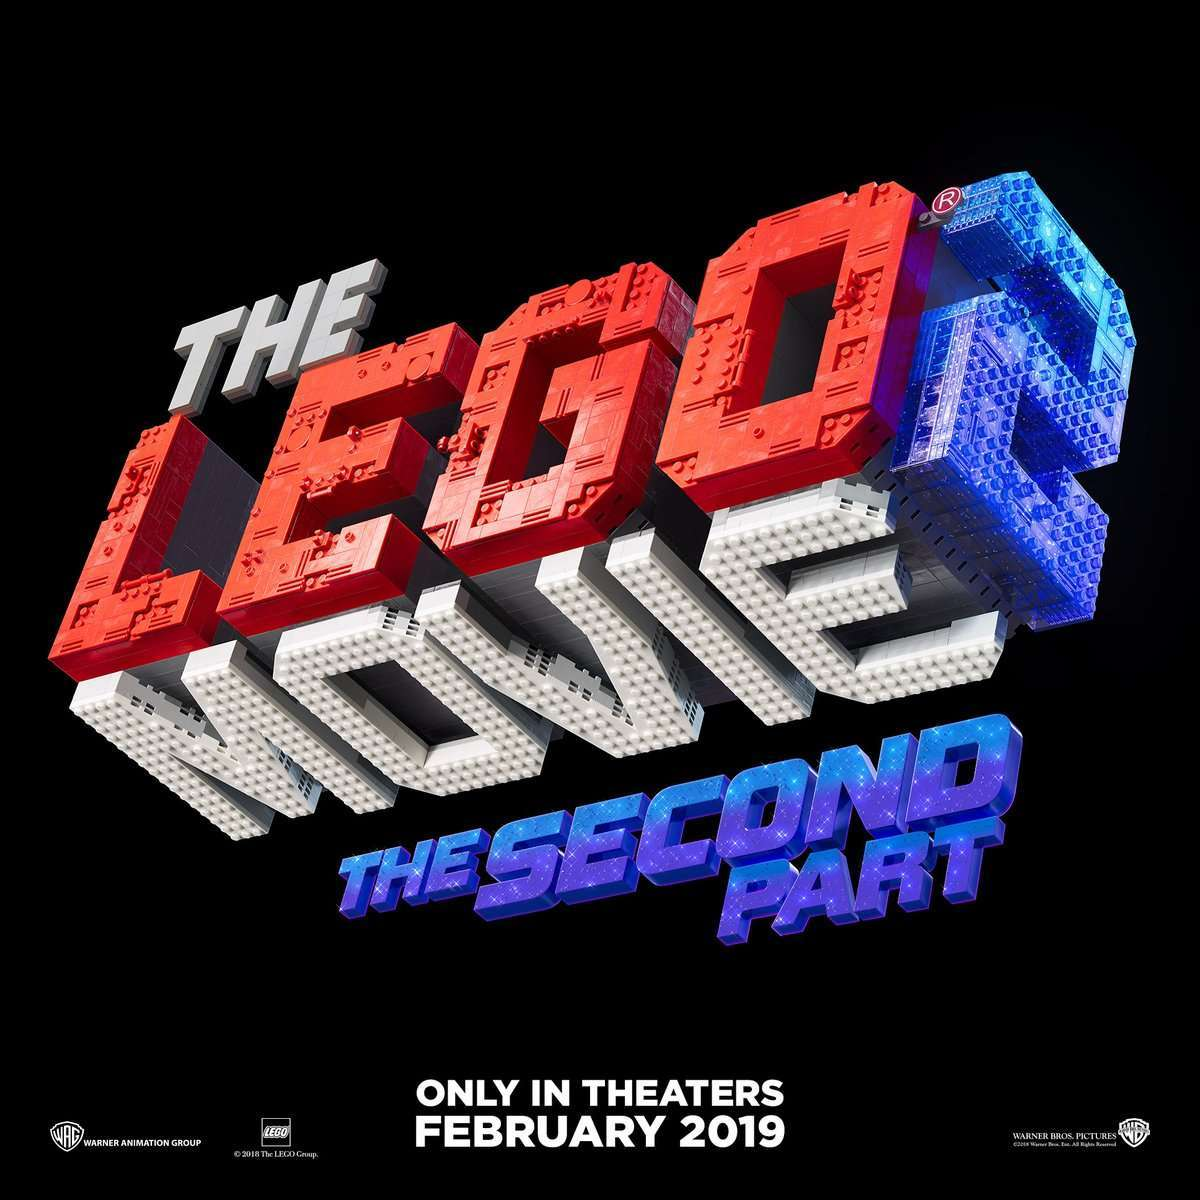 lego-movie-2-1110874